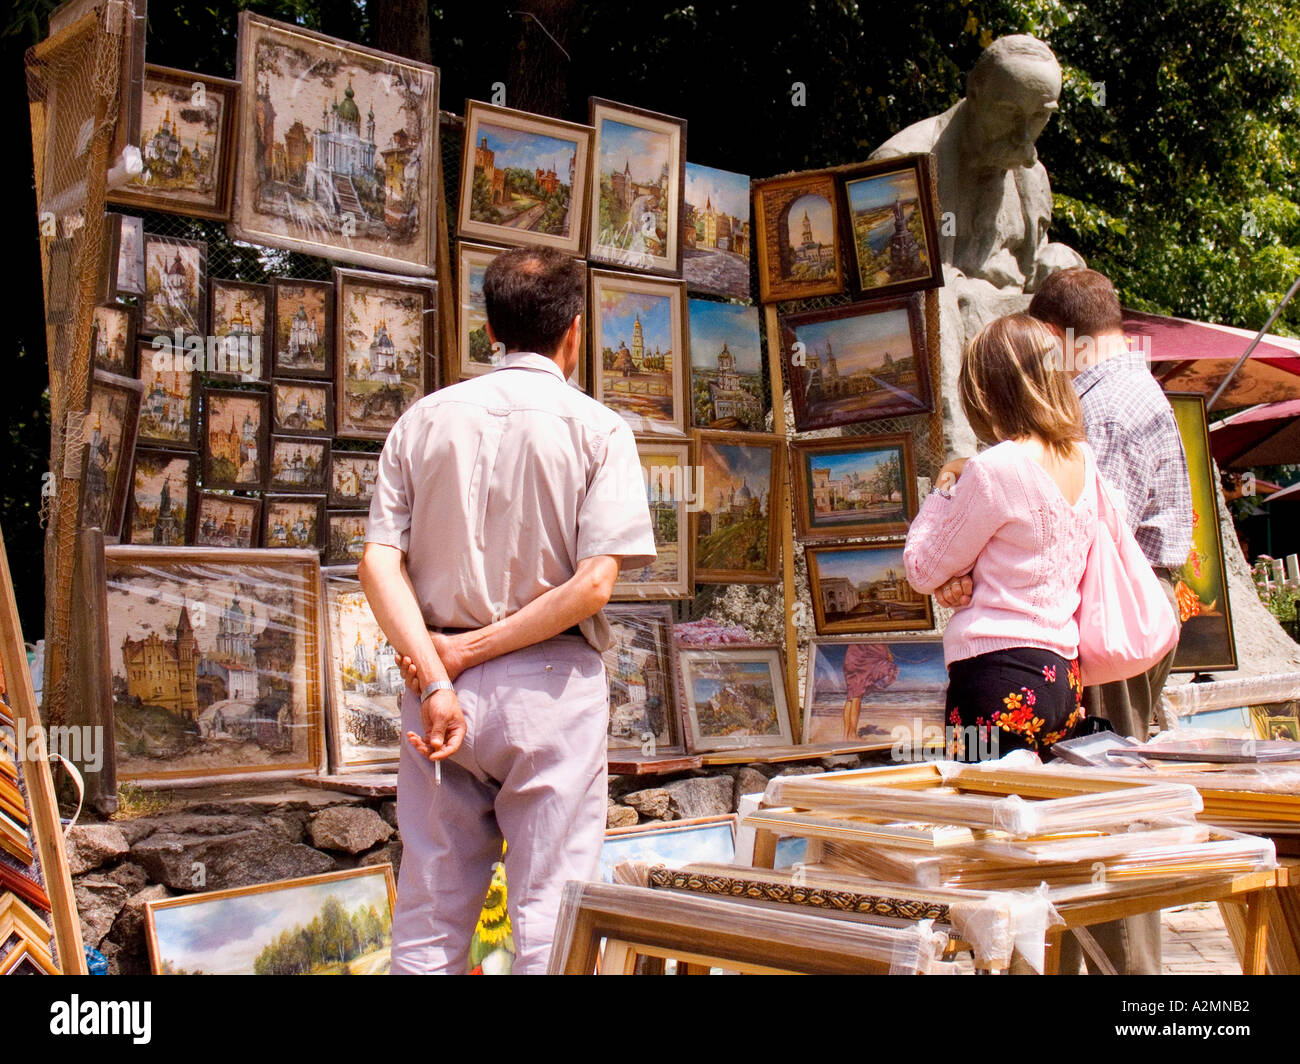 Ukraine Kiev Andrijivskyj marché de l'art de la route des touristes clients peintures 2004 Photo Stock